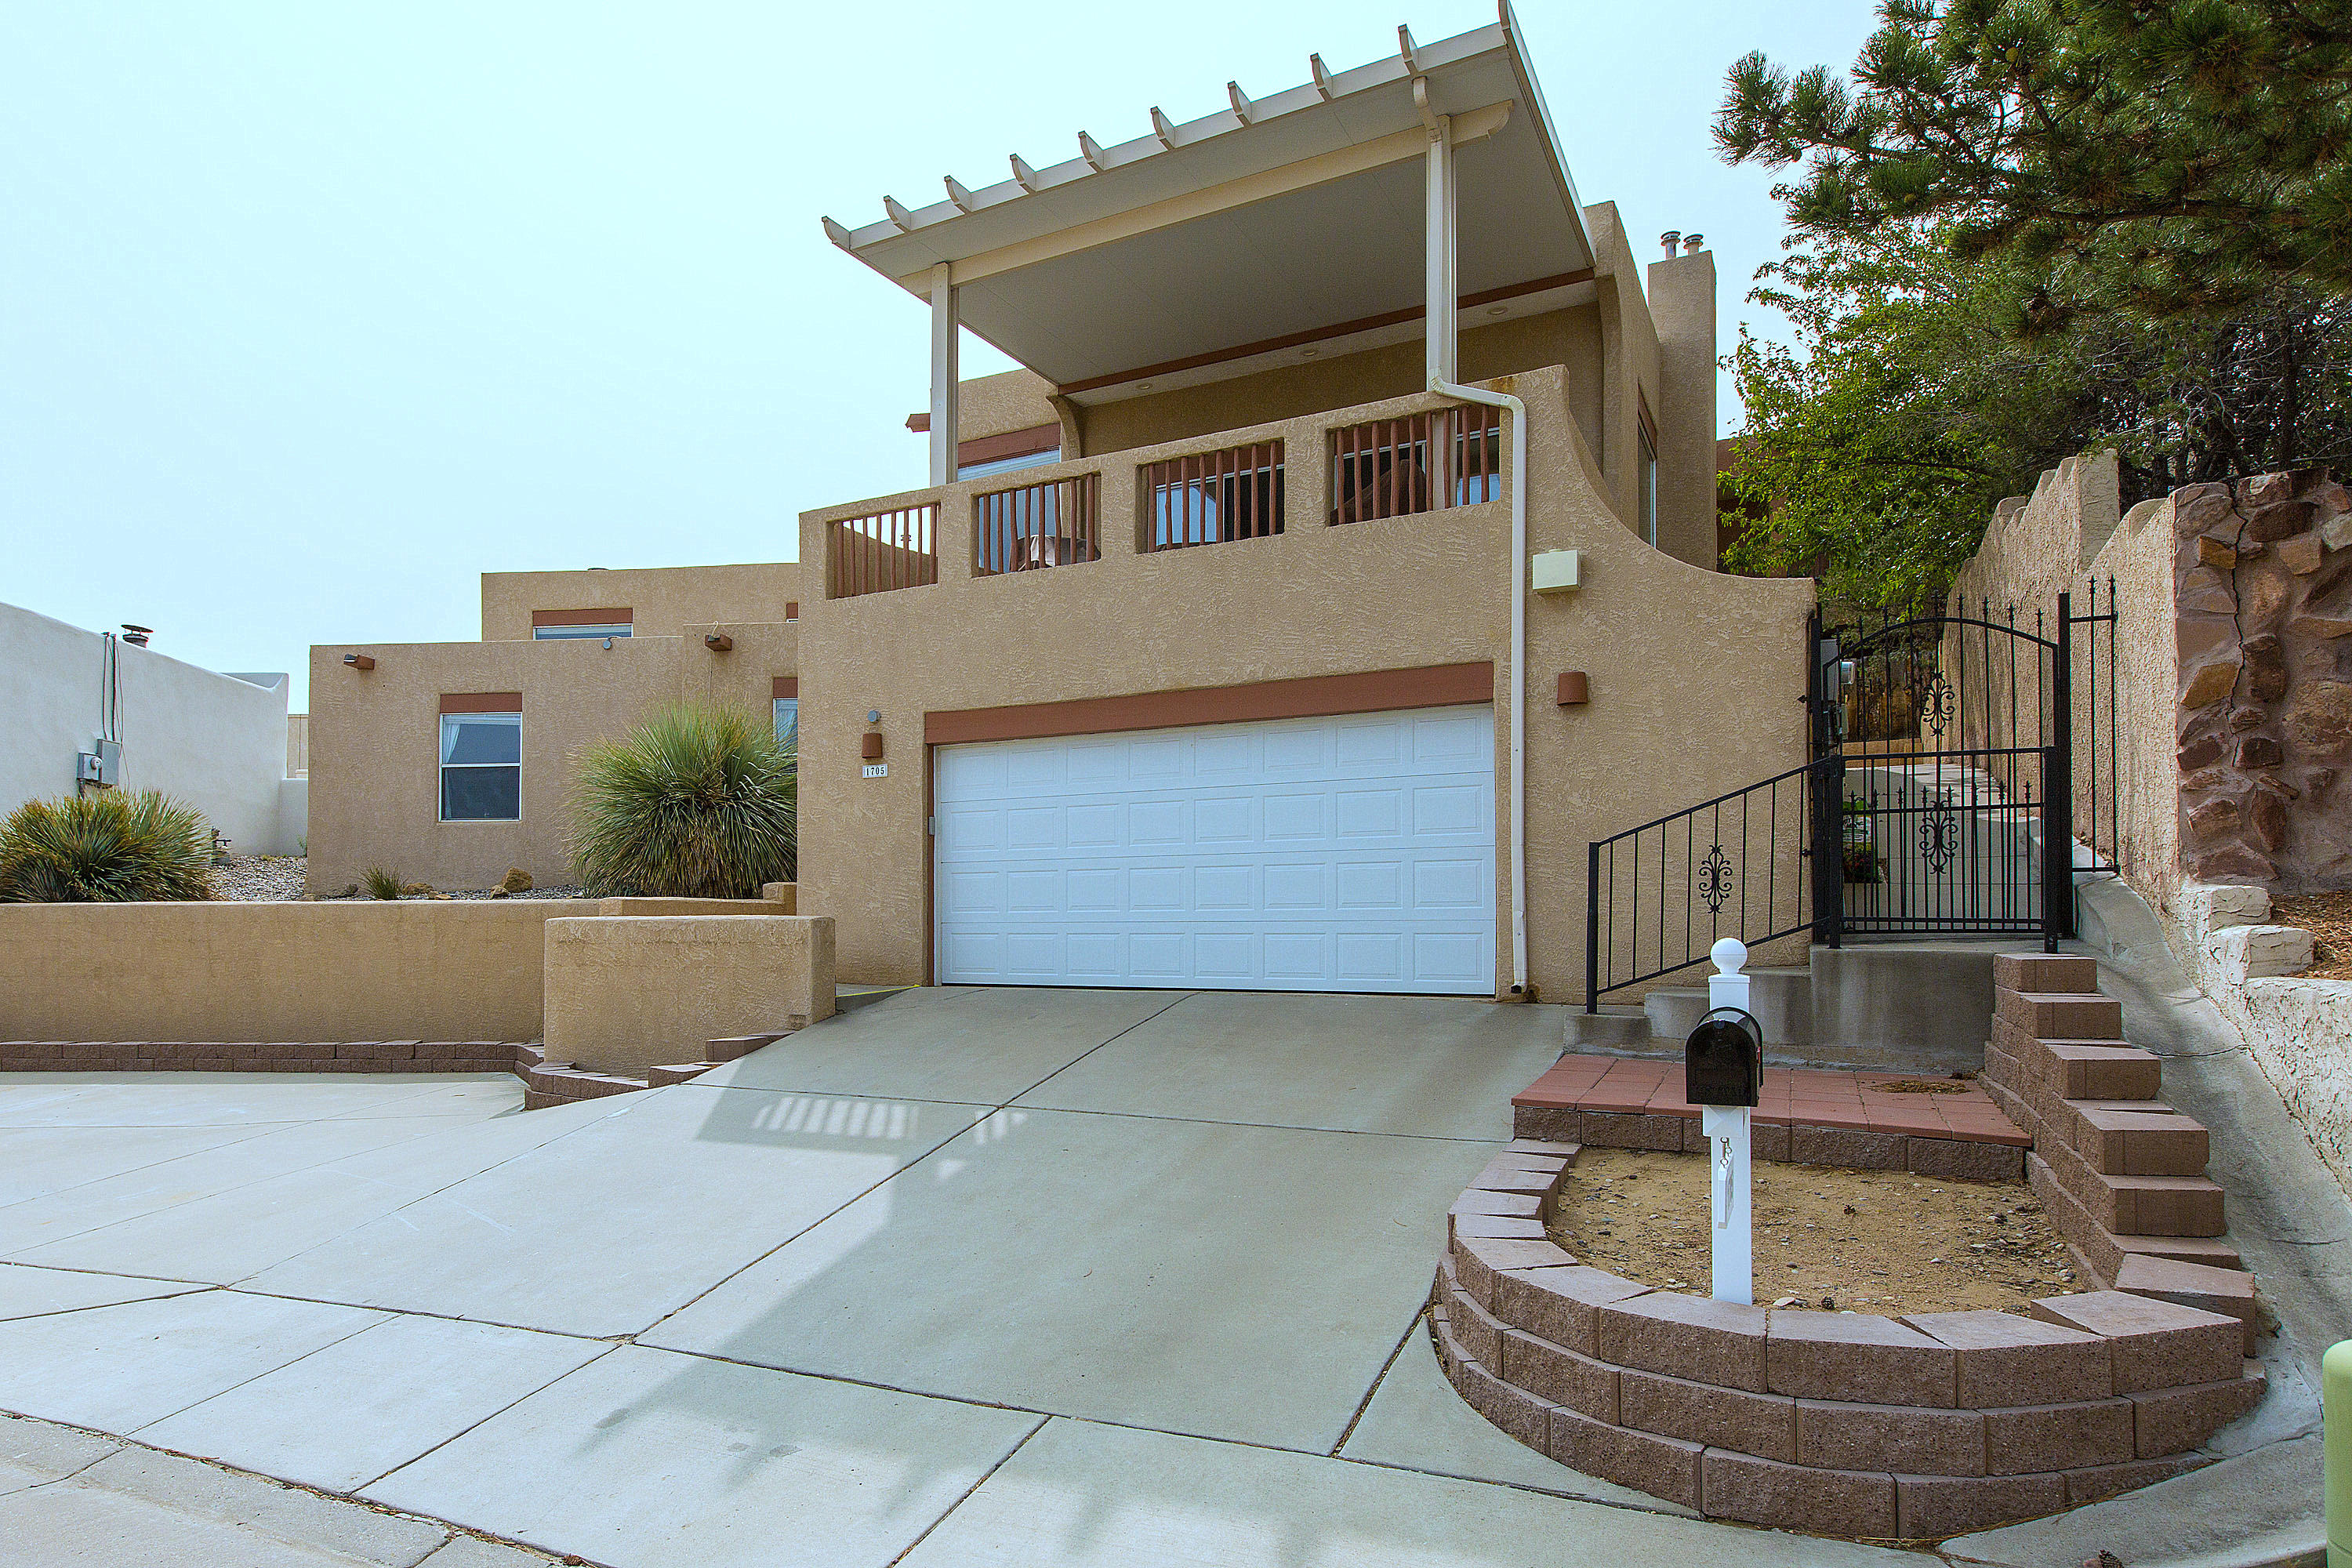 Amazing Views from this custom home located in an upscale established neighborhood. Centrally located with easy access to I-40, shopping, eats and more. 180 degree views of the Rio Grande Valley, Downtown, Sandias, Manzanos, Old Town, Bio Park & the Bosque. Downstairs wing is separate, private, quiet & offers 2 BR's & BA.  Upstairs boasts open living area w/expansive views, spacious deck, kitchen w/lots of storage, formal DR, & second large living space w/gas kiva + another BR, BA & the Primary Suite where you'll find a large BR, MORE VIEWS, gas kiva fireplace, bath w/dual sinks, separate tub & shower, huge walk-in closet w/ built-in storage. Natural light thru out this home! Relax in your safe, private pocket of long-term residents perched on the Bluffs of the Rio Grande.